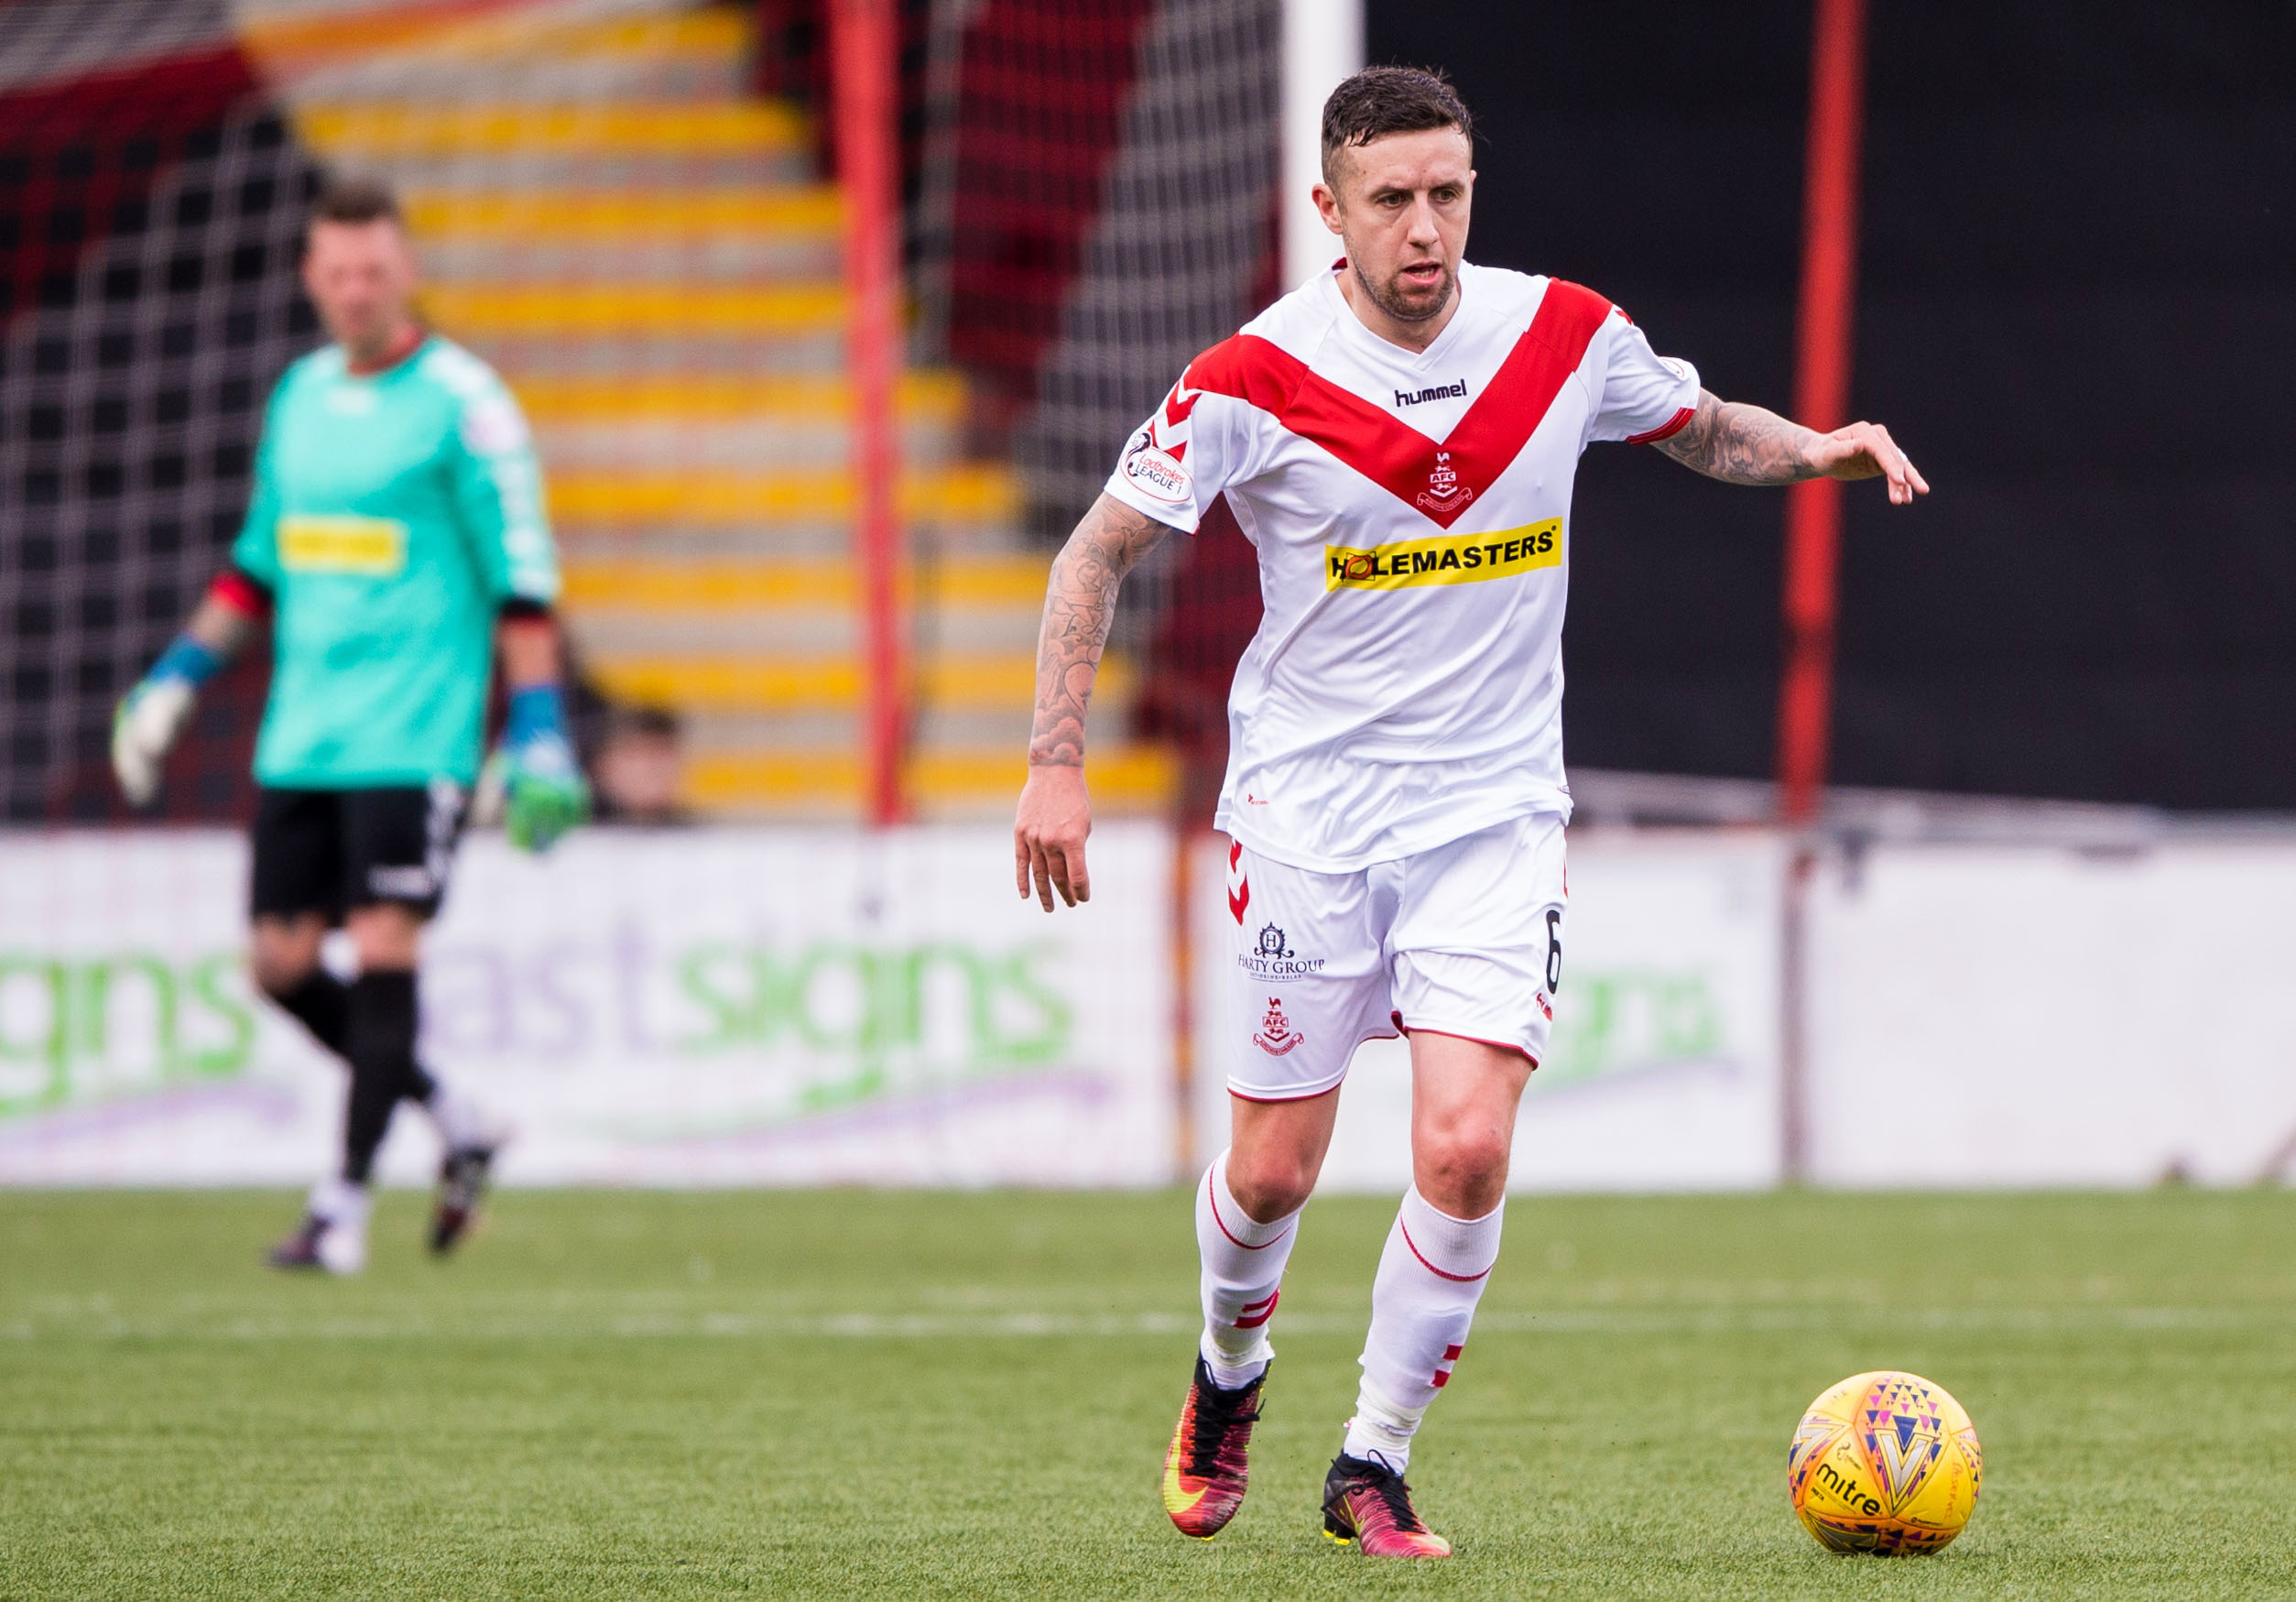 Ryan Conroy in action for Airdrieonians.